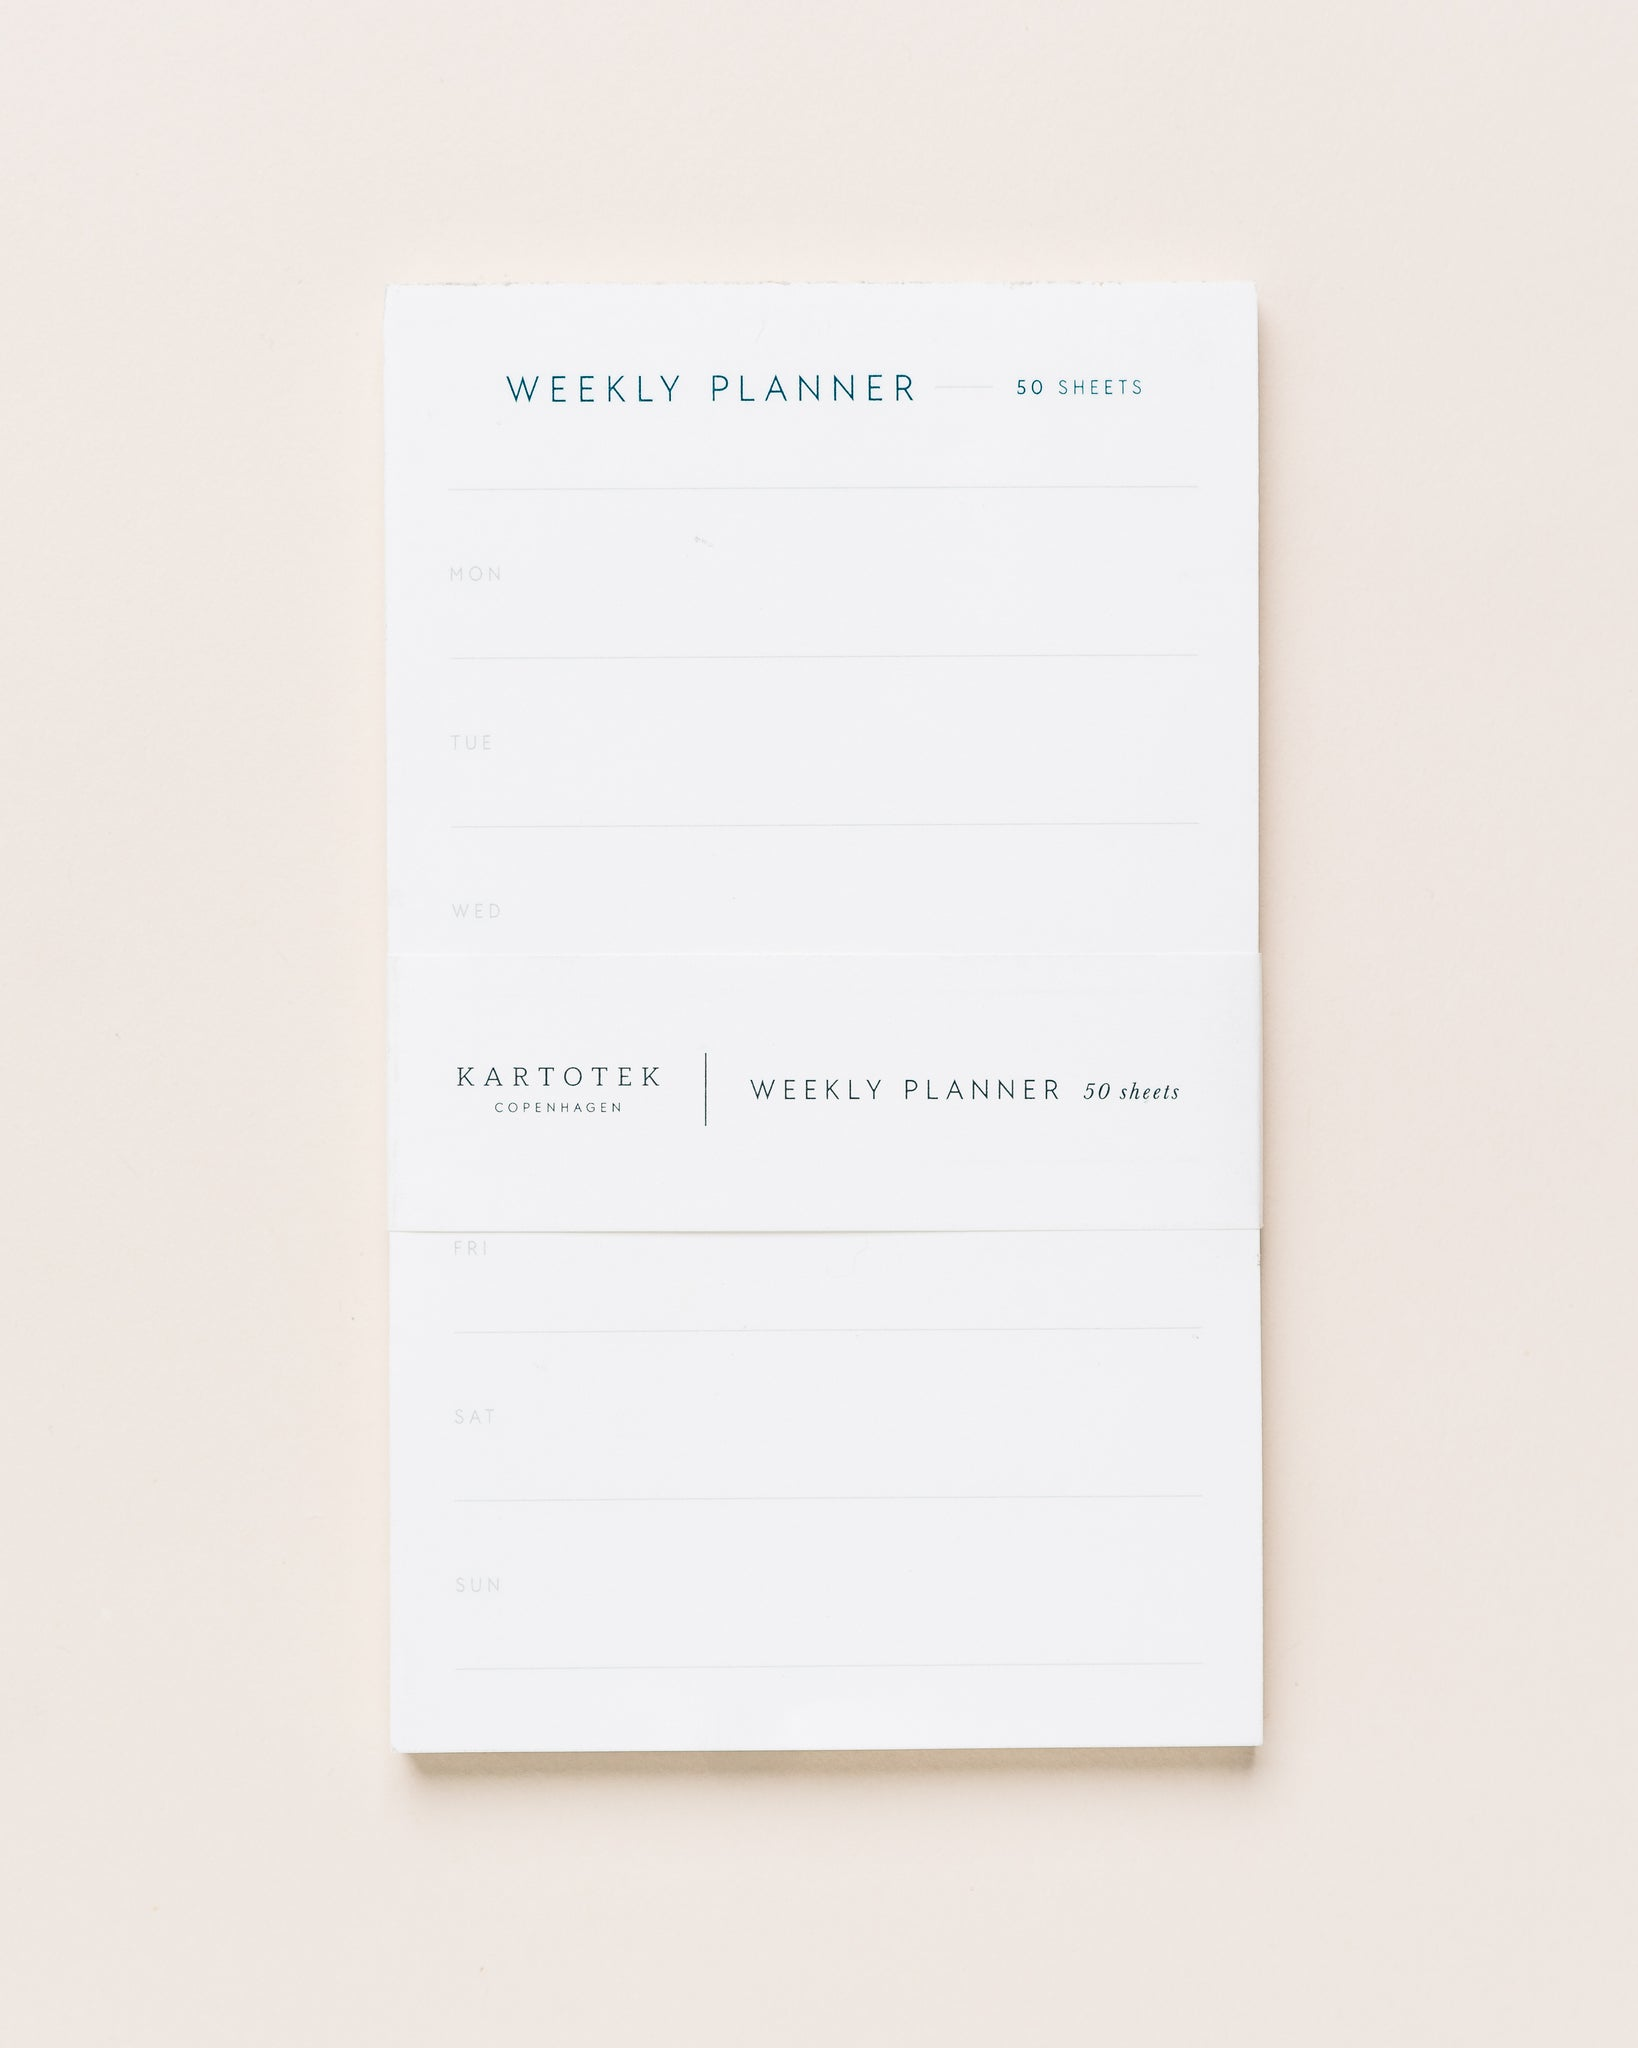 Kartotek Weekly Planner Notepad, Small